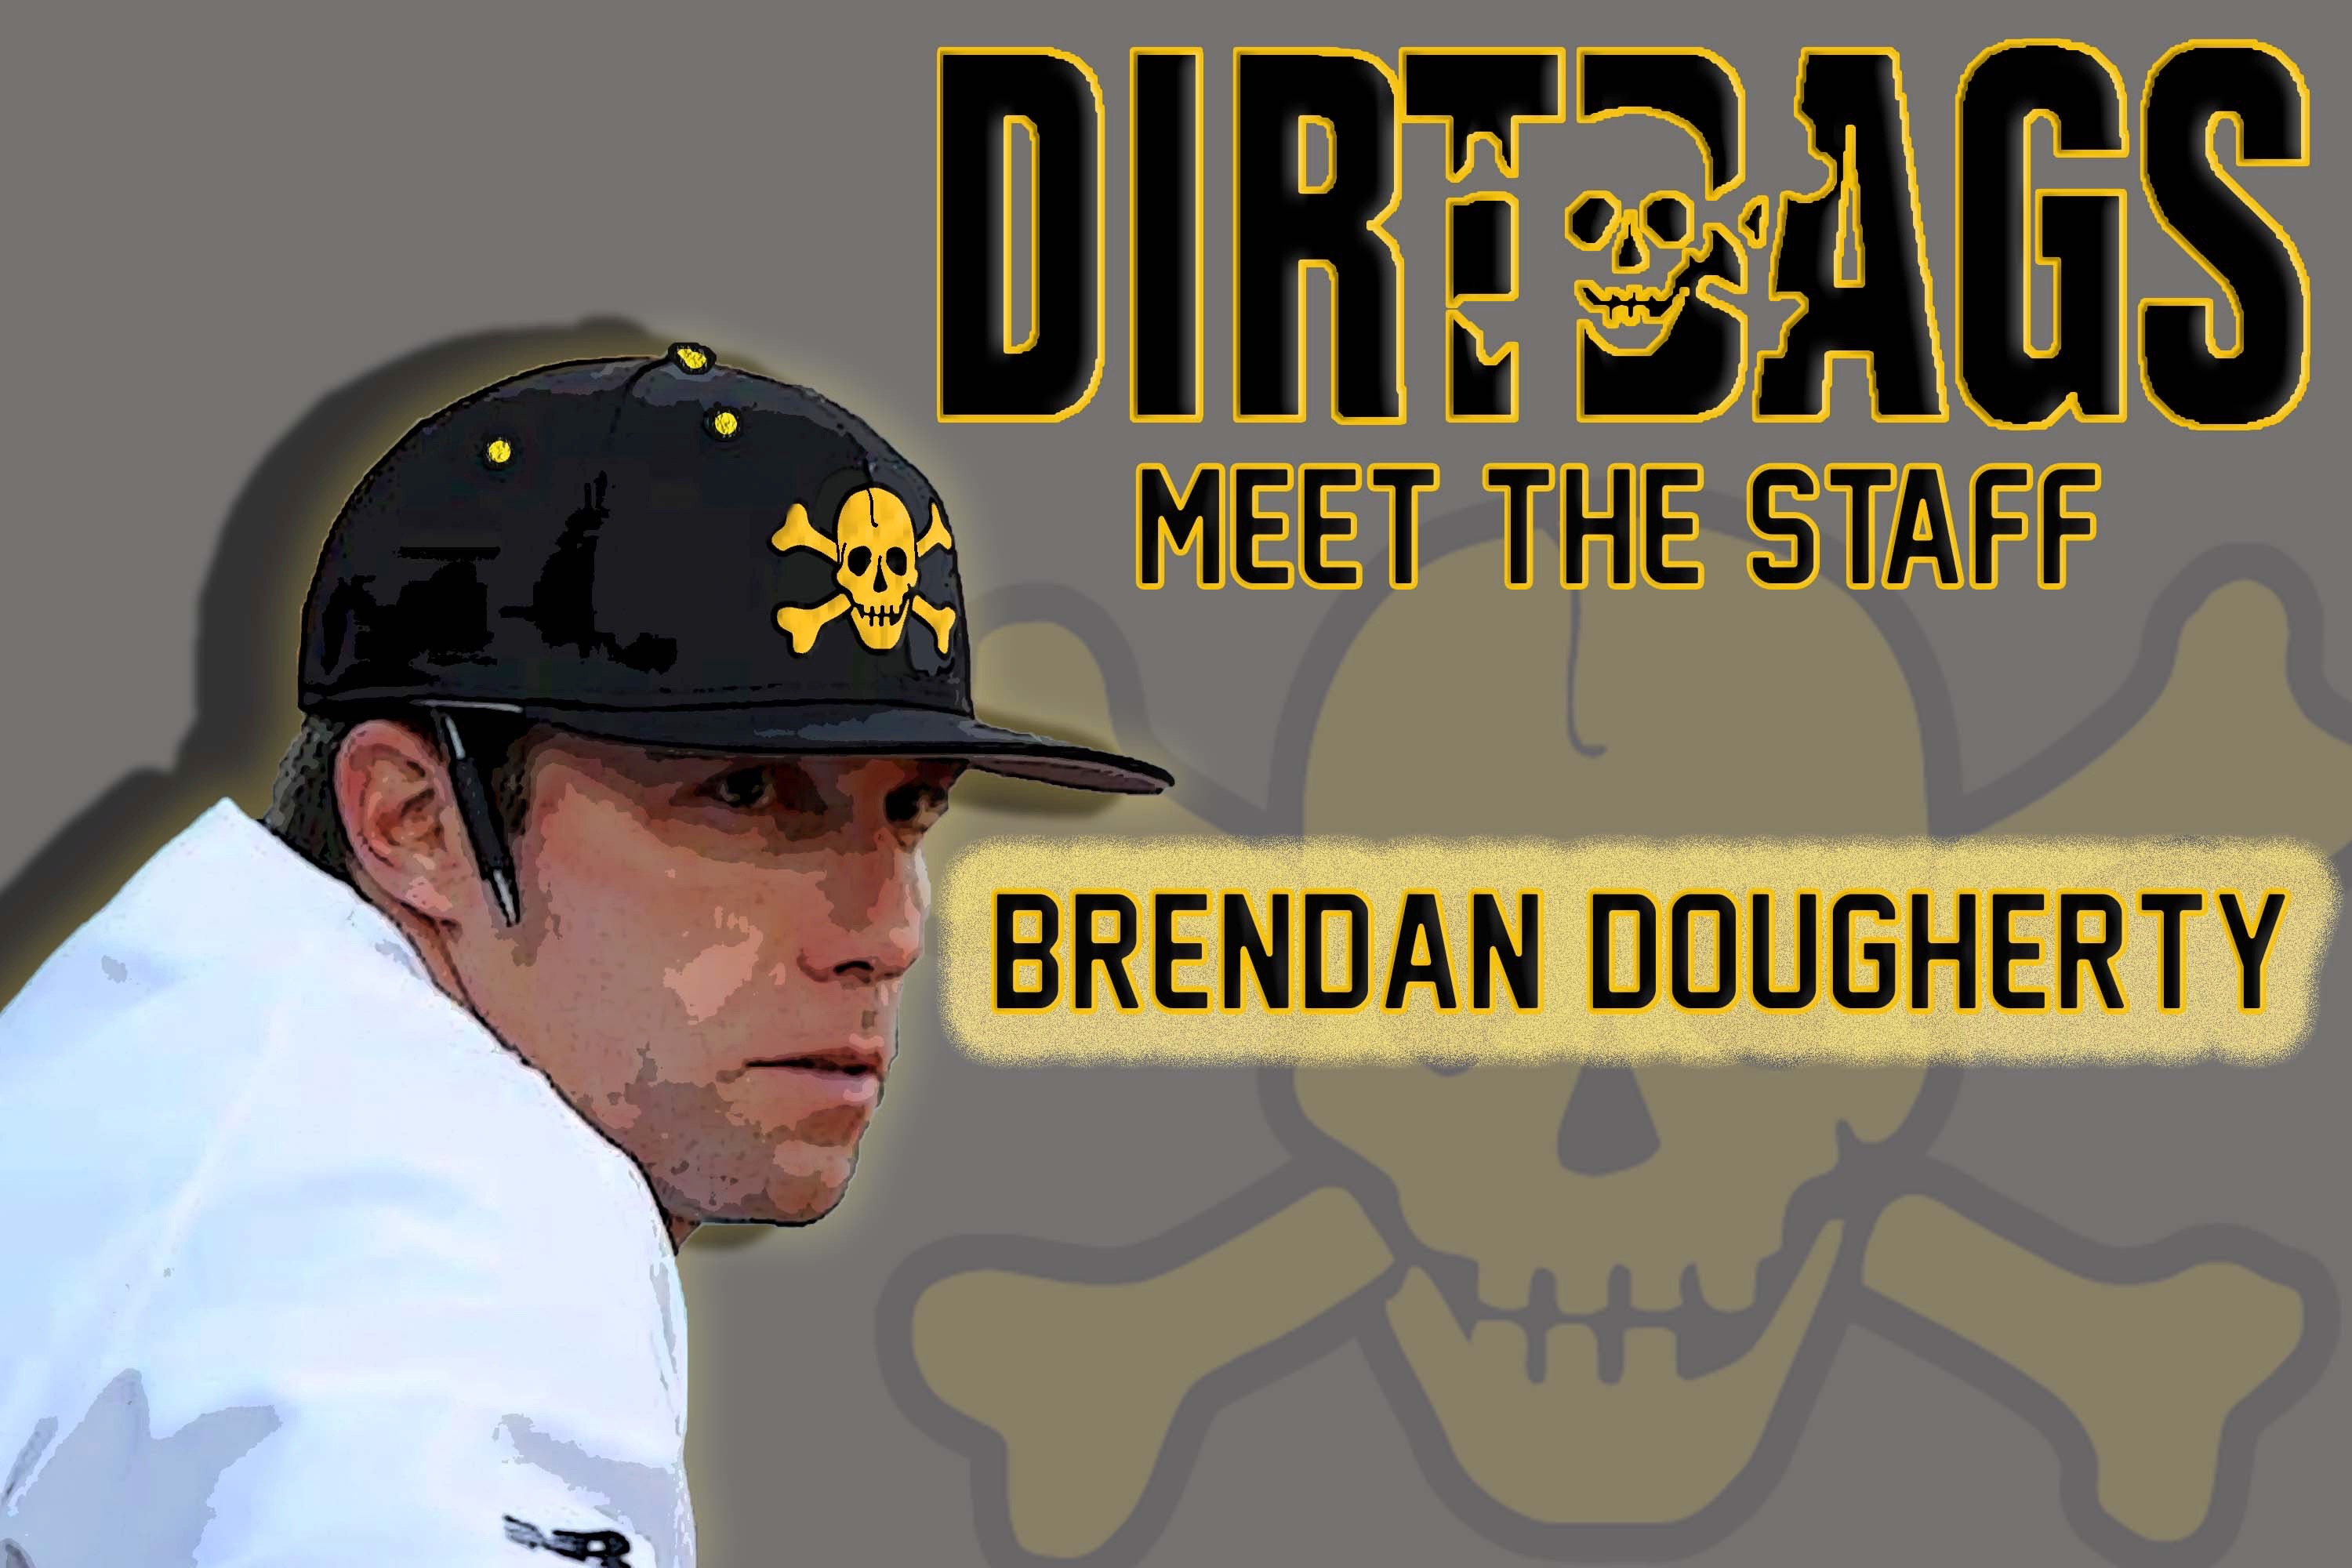 Meet The Staff: Brendan Dougherty